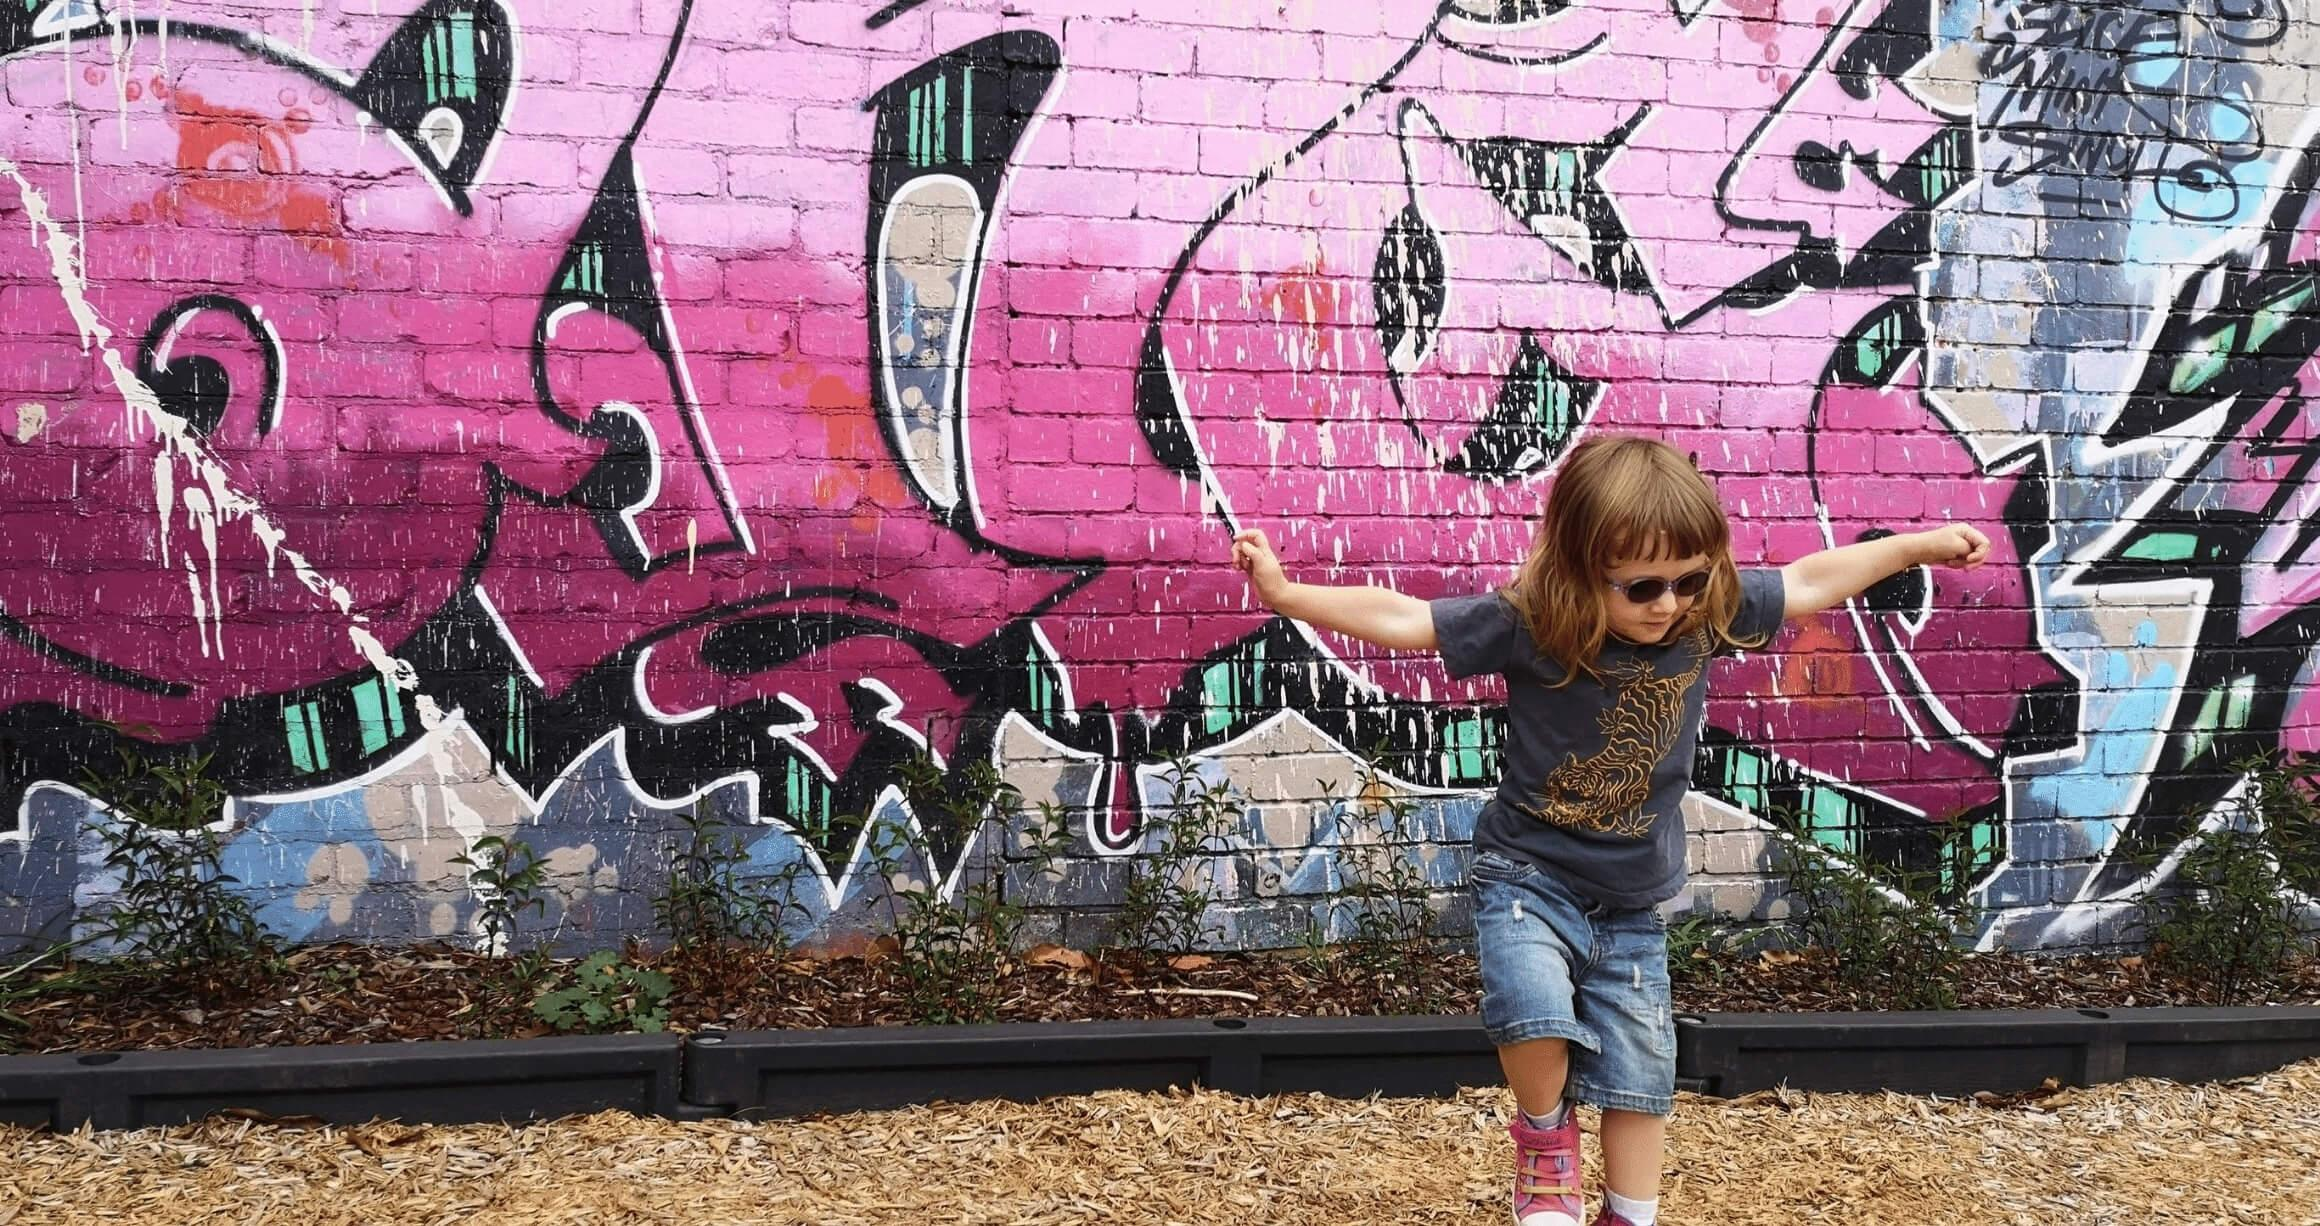 Image of small girl dancing in front of pink colourful wall with street art